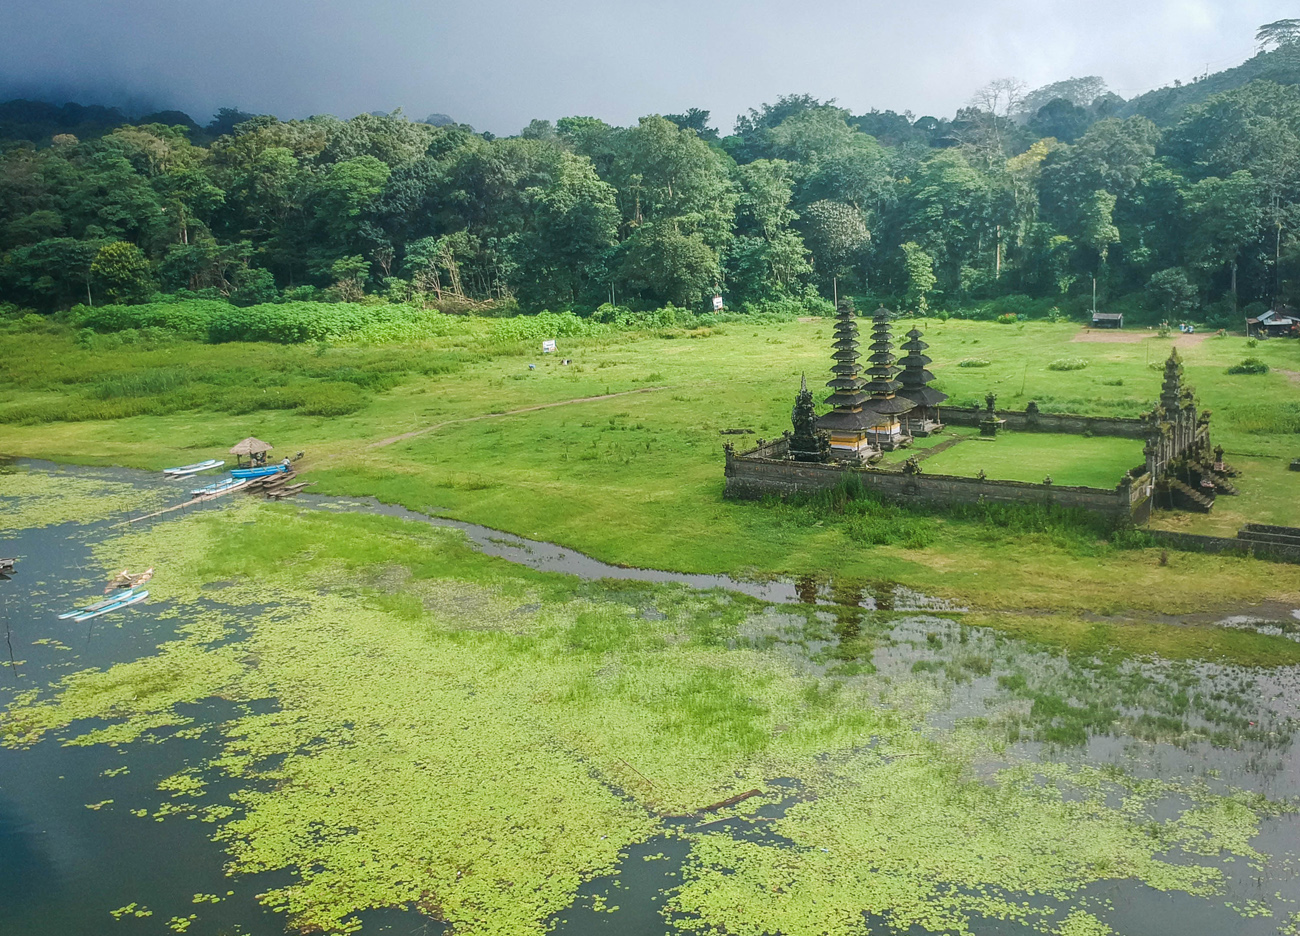 Ulun-Danu-Tamblingan-Temple-by-Lake-in-North-Bali